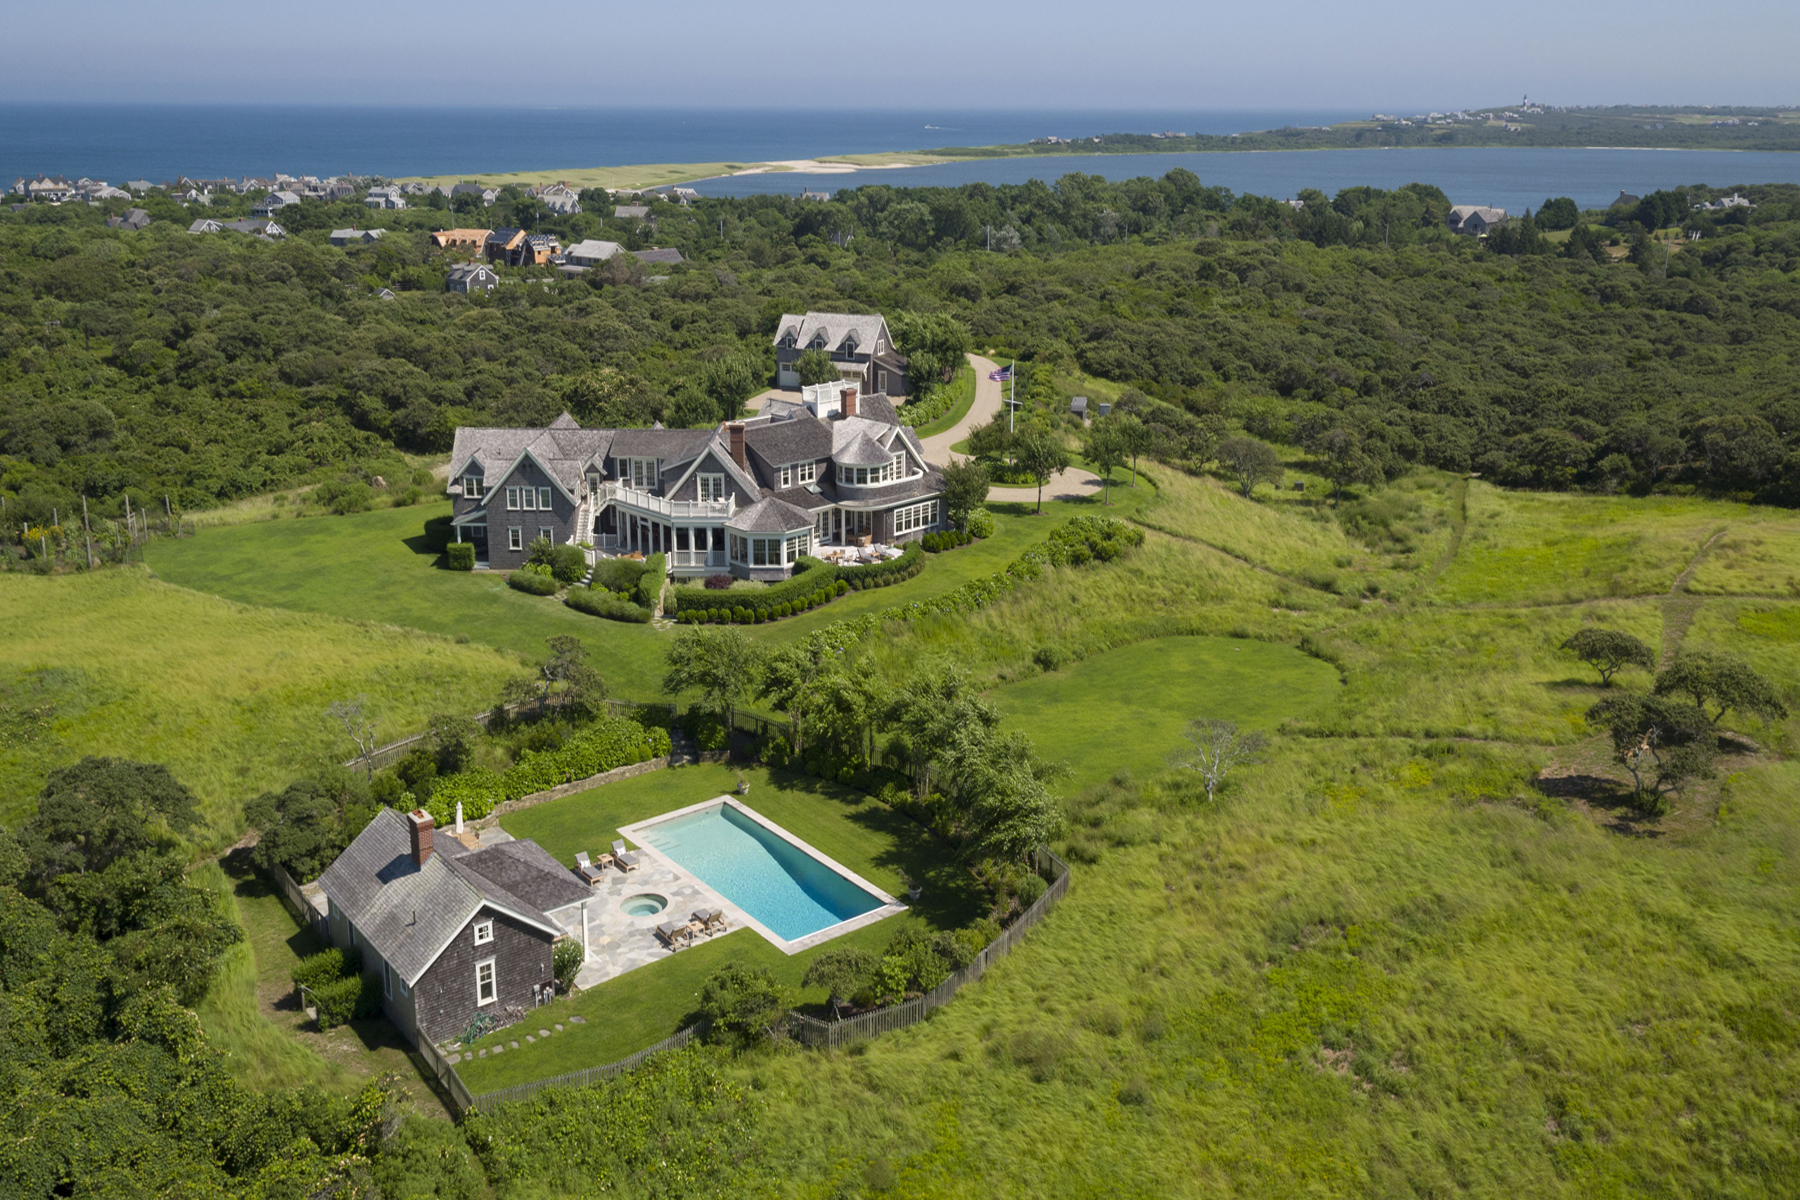 Maison unifamiliale pour l Vente à Private Estate Over 14 Acres 30R Quidnet Rd Nantucket, Massachusetts 02554 États-Unis